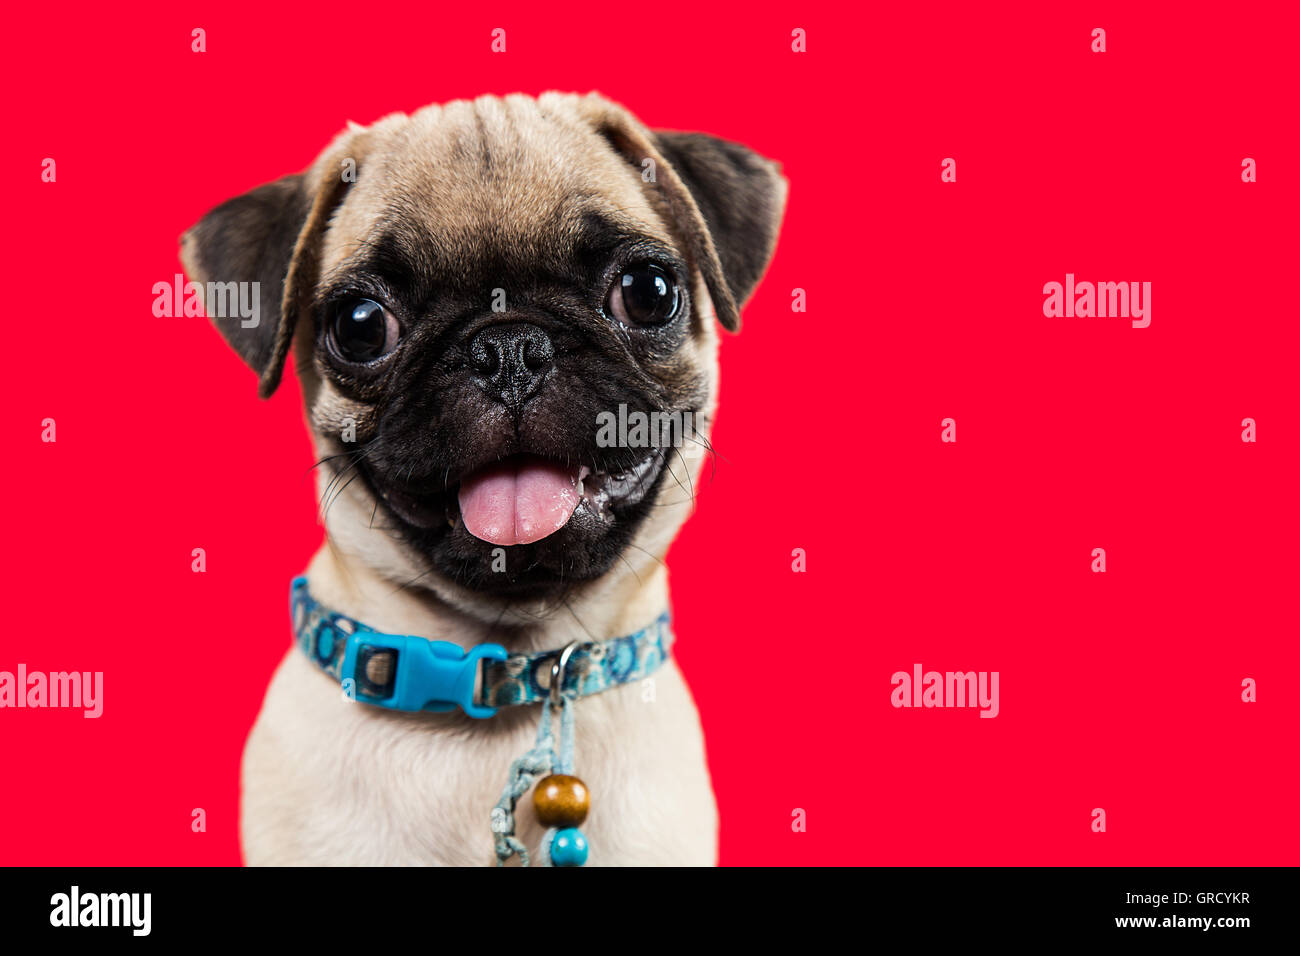 A pug puppy smiling in red background - Stock Image